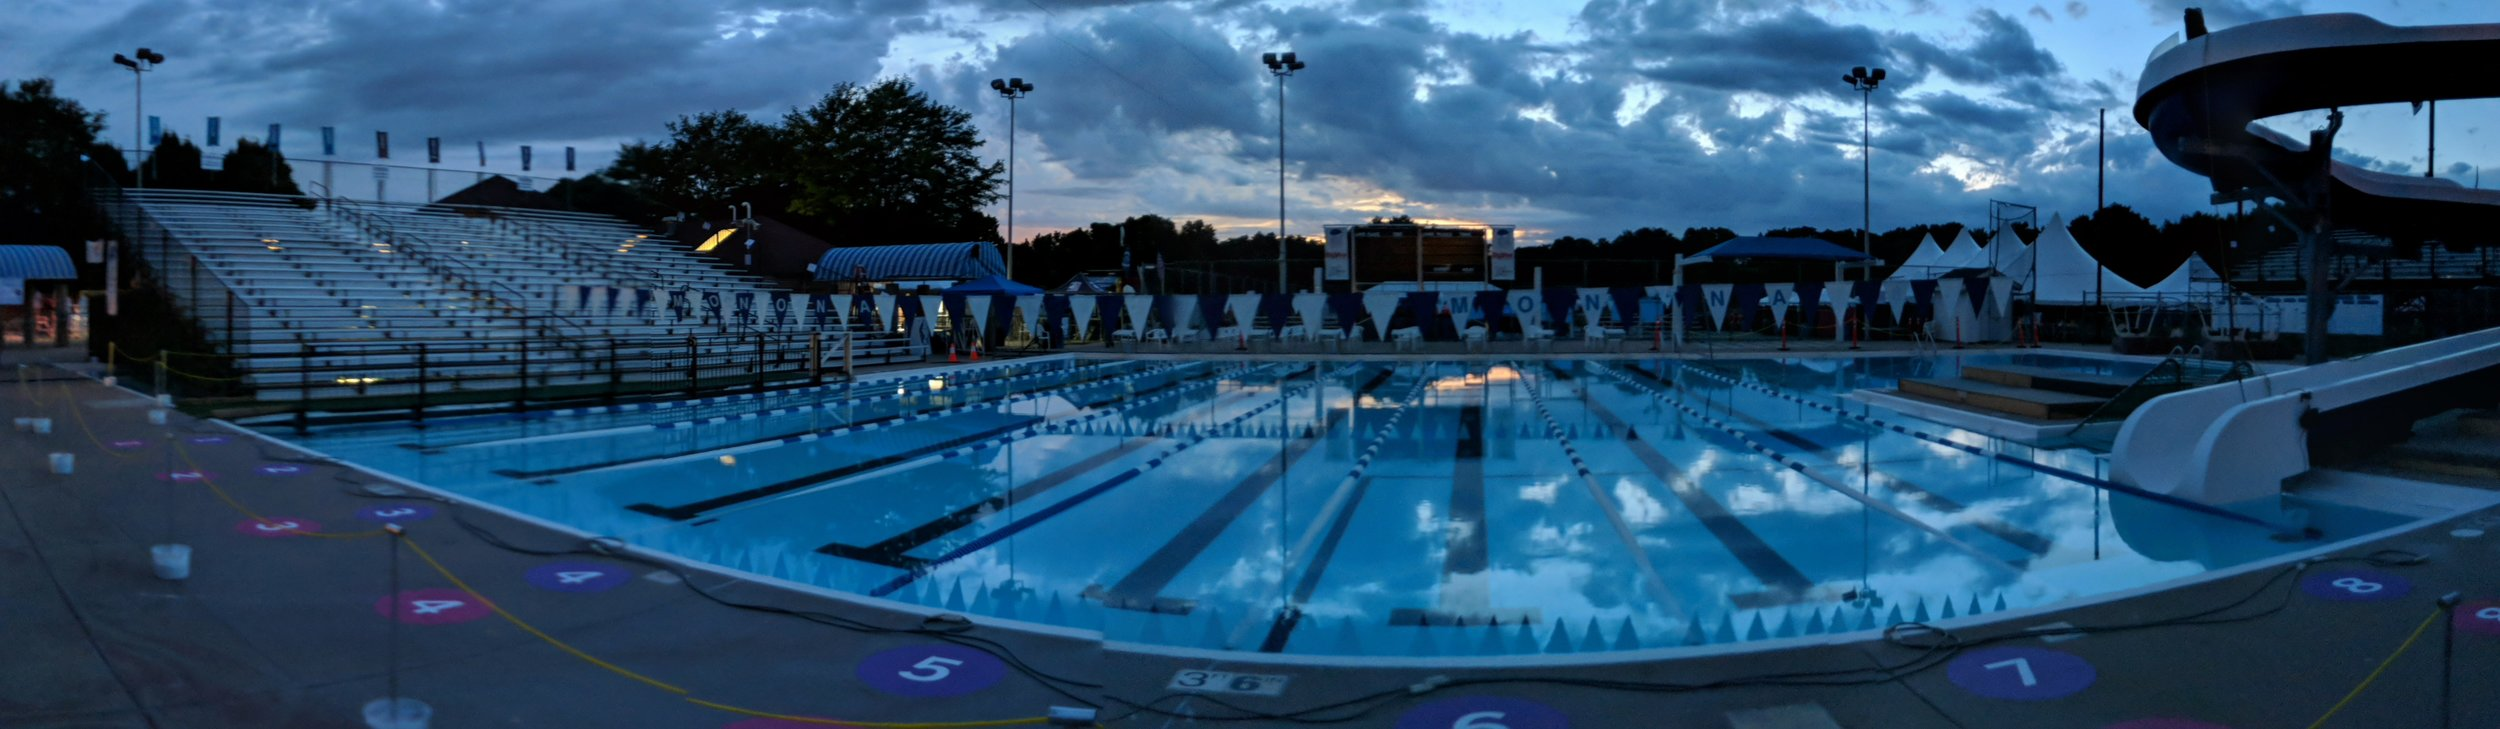 Monona pool transformed for All City 2018